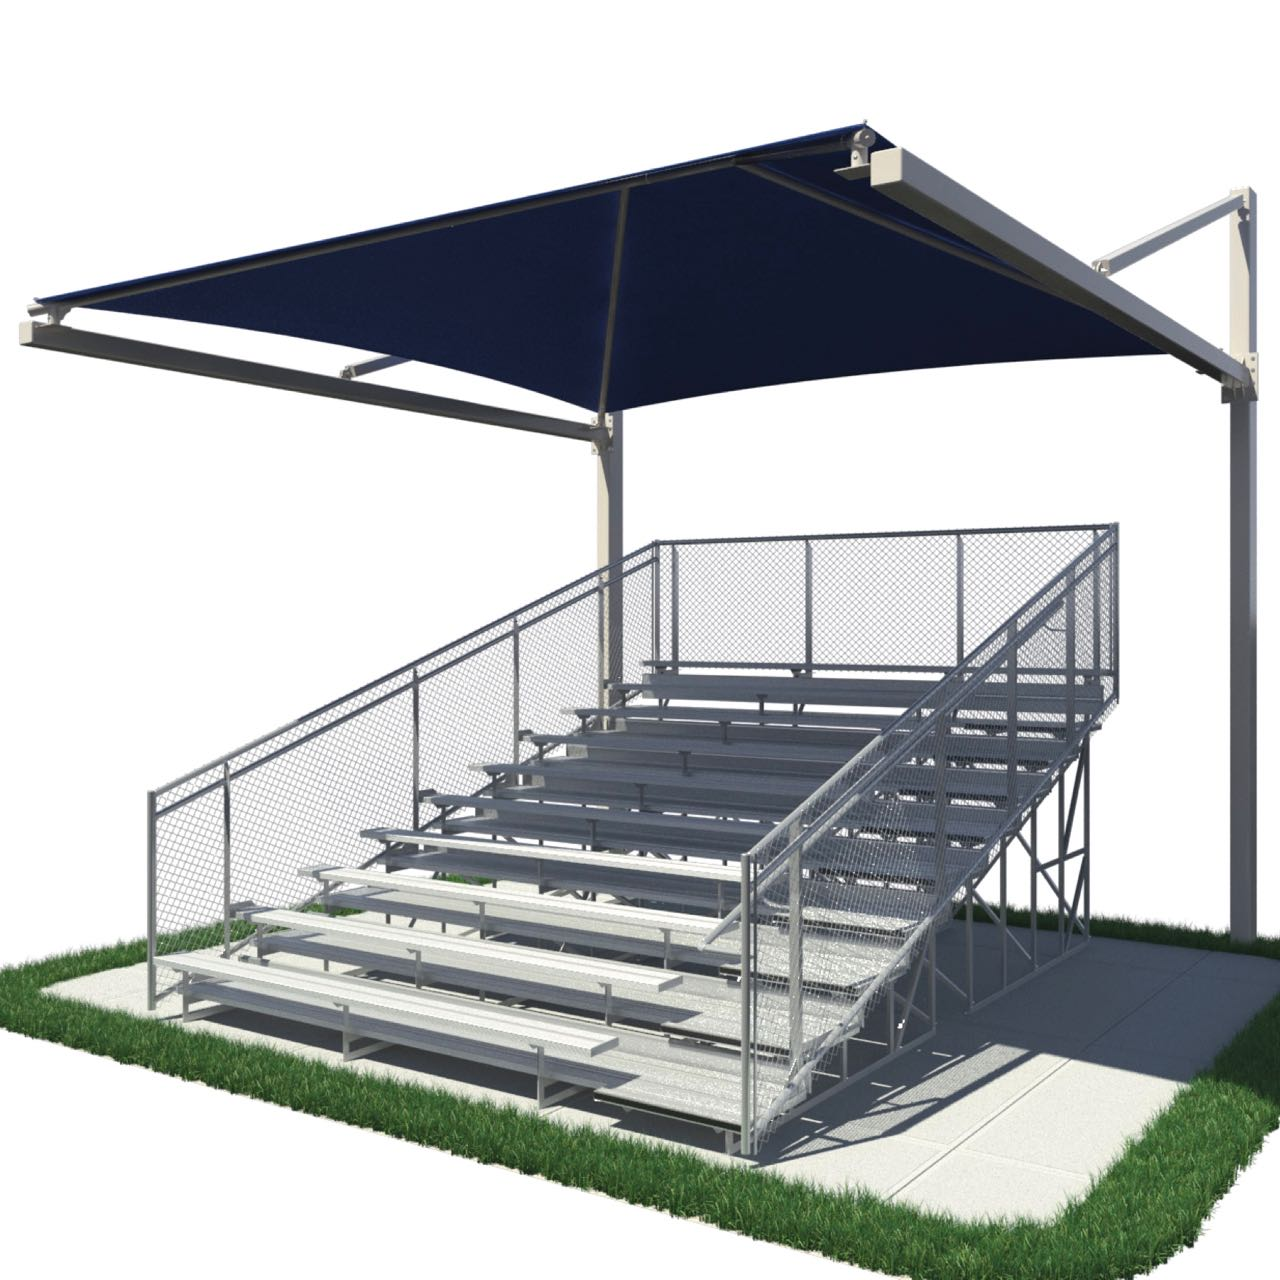 Bleacher Shades Suspended Cantilever Design From Aaa